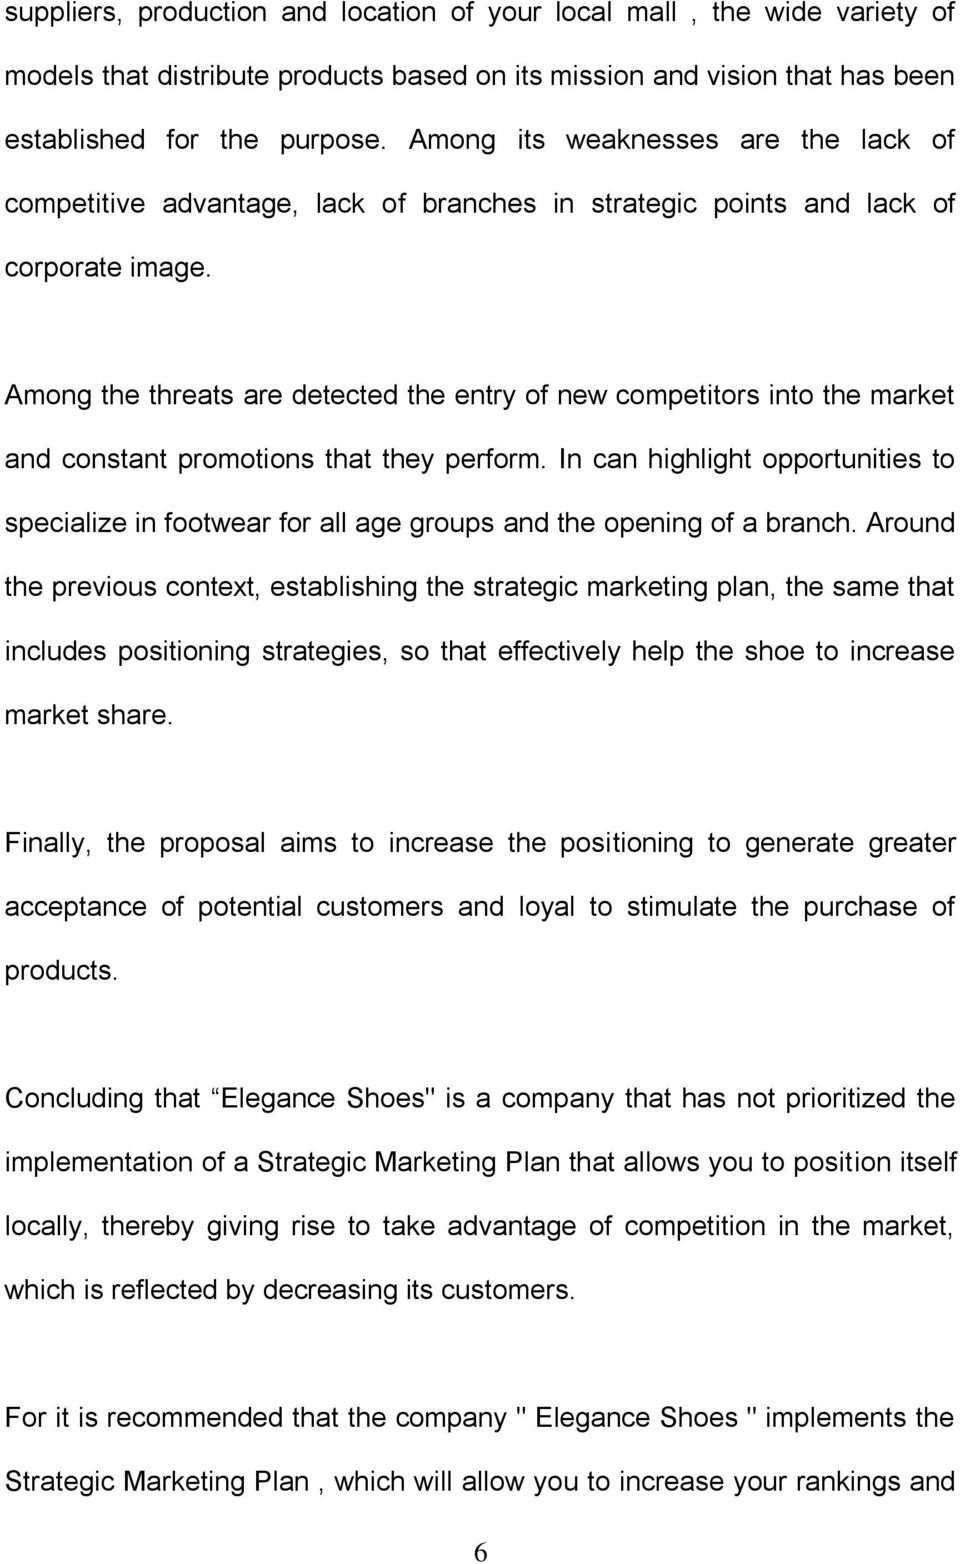 Among the threats are detected the entry of new competitors into the market and constant promotions that they perform.